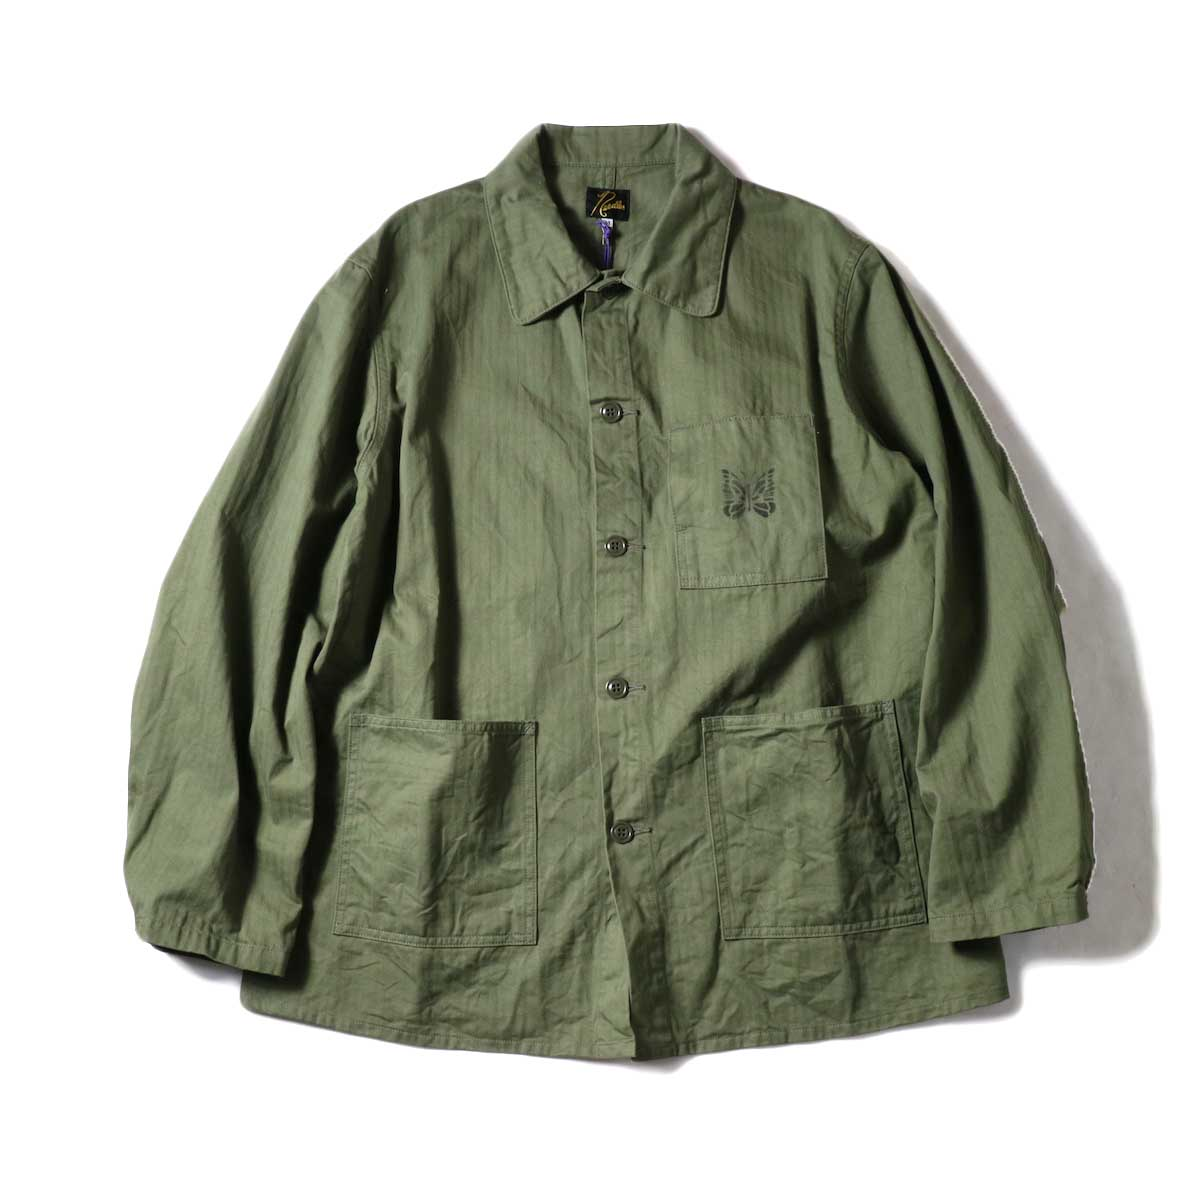 Needles / D.N. Coverall - Cotton Herringbone (Olive)